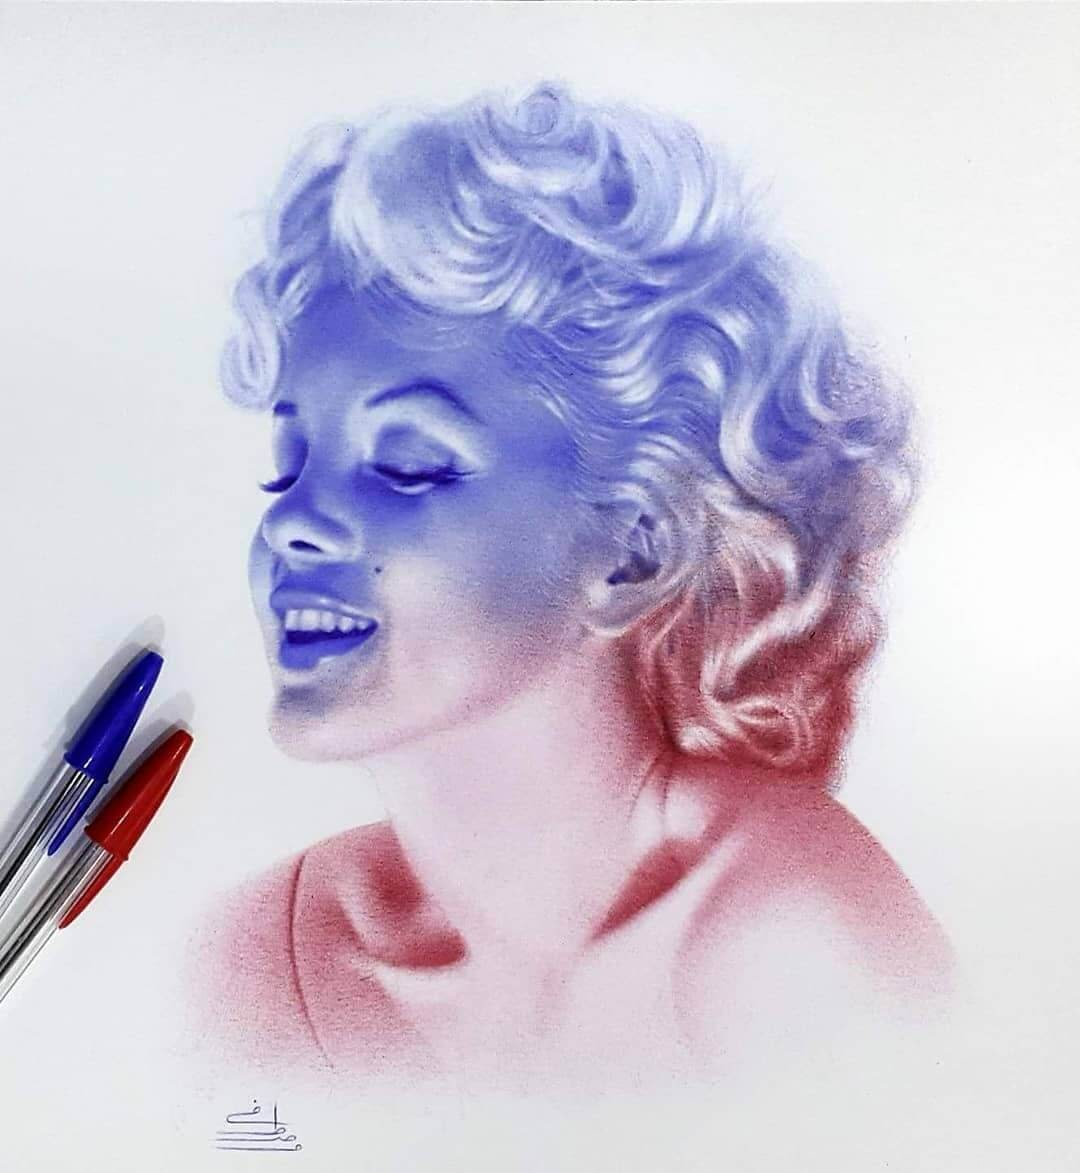 05-Marilyn-Monroe-Mostafa-Khodeir-Celebrities-and-Non-Ballpoint-Pen-Portraits-www-designstack-co